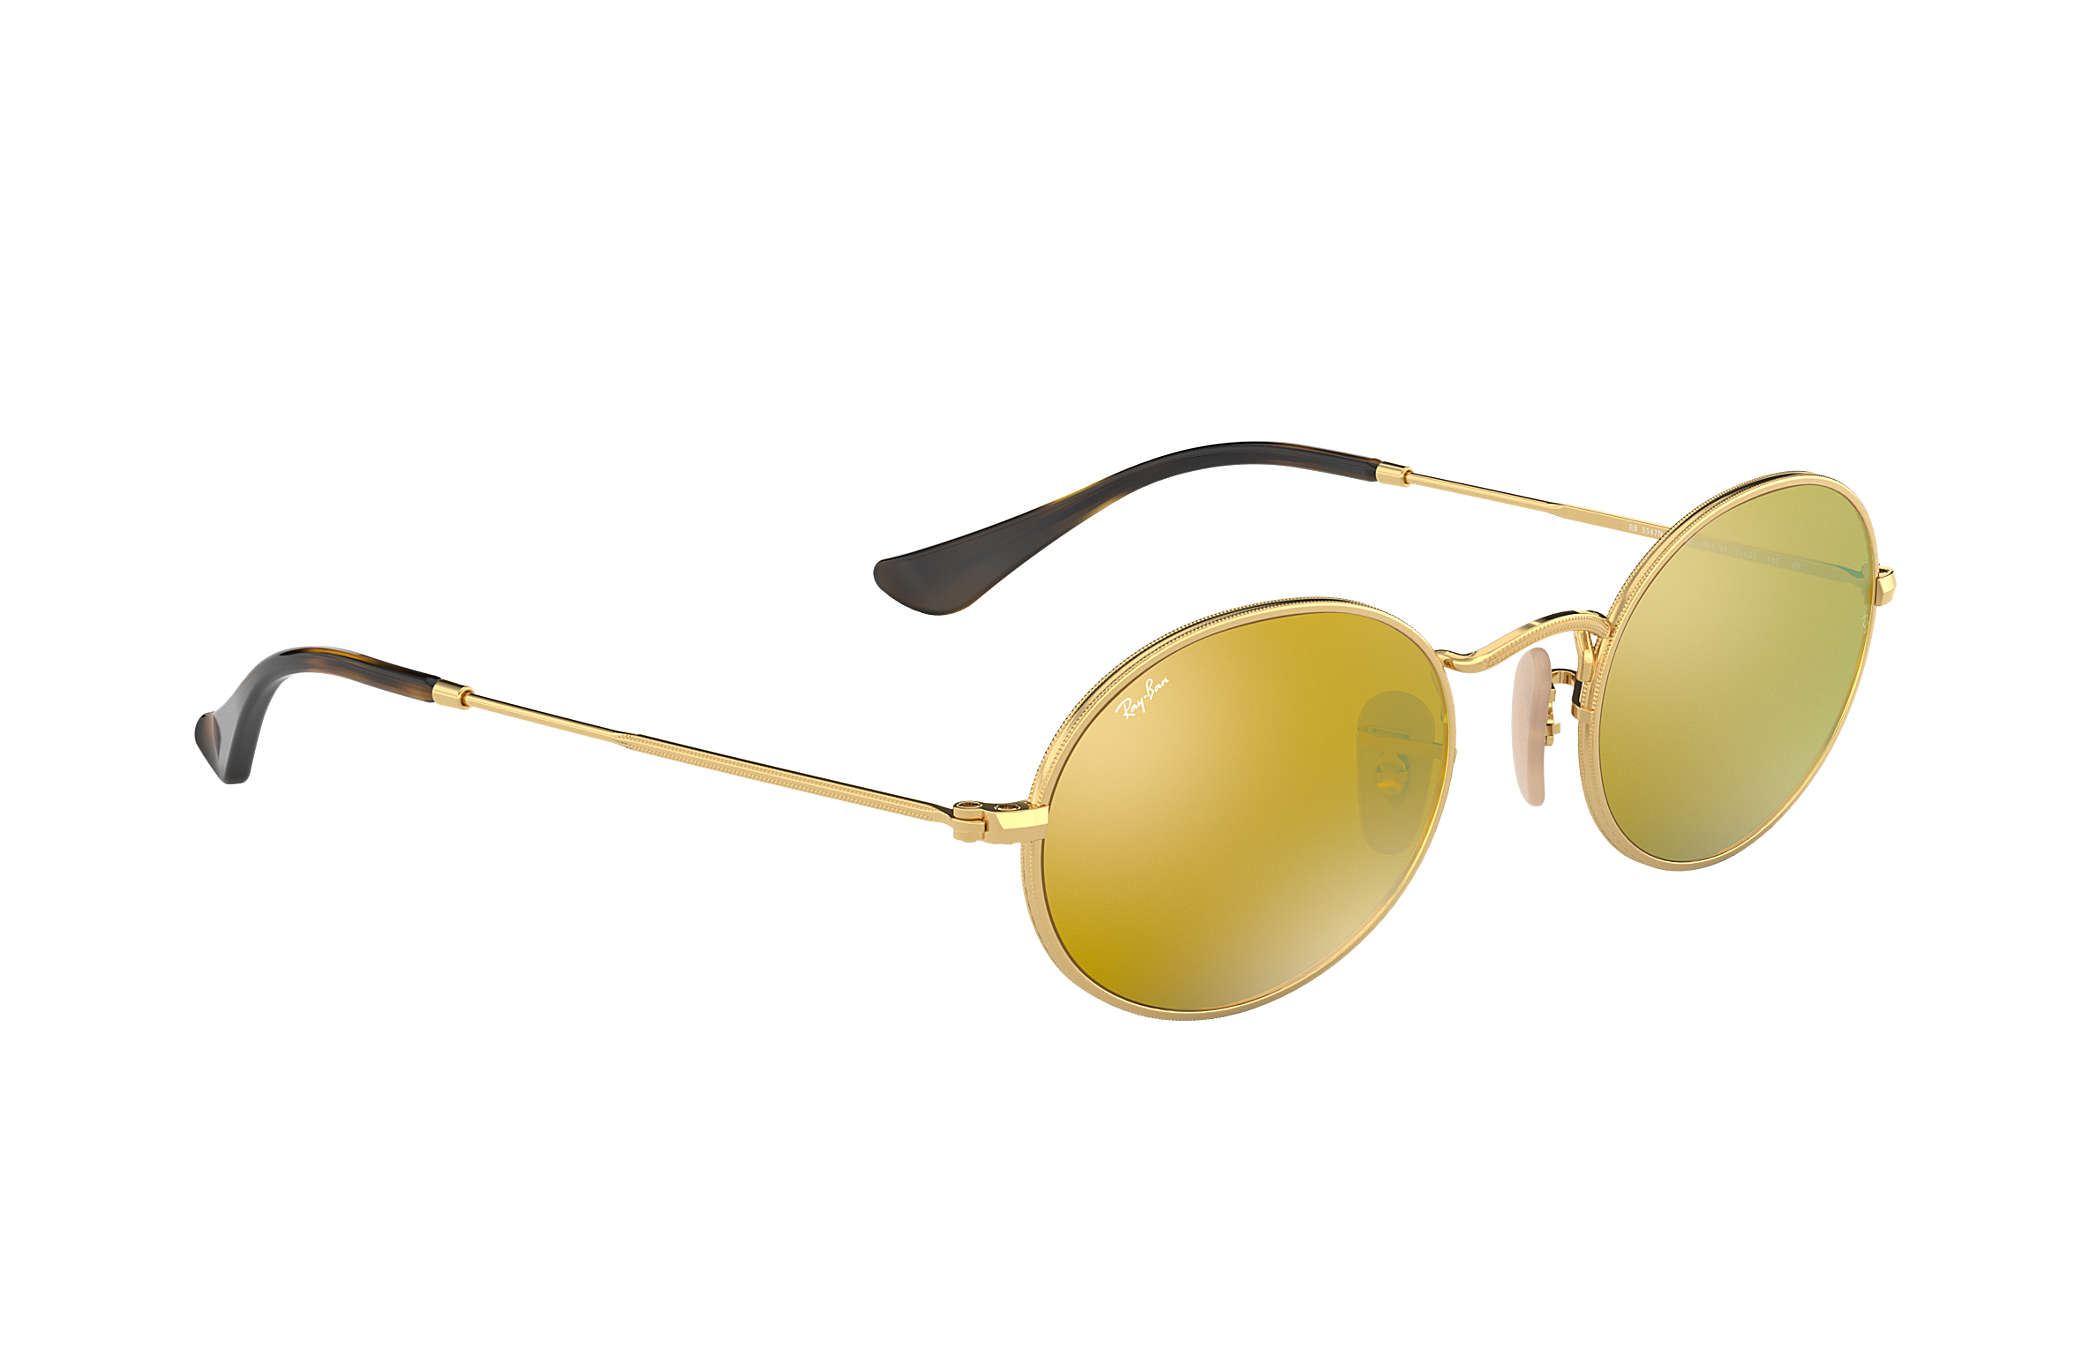 af30ee40a4 Ray-Ban Oval Flat Lenses RB3547N Gold - Metal - Yellow Lenses ...